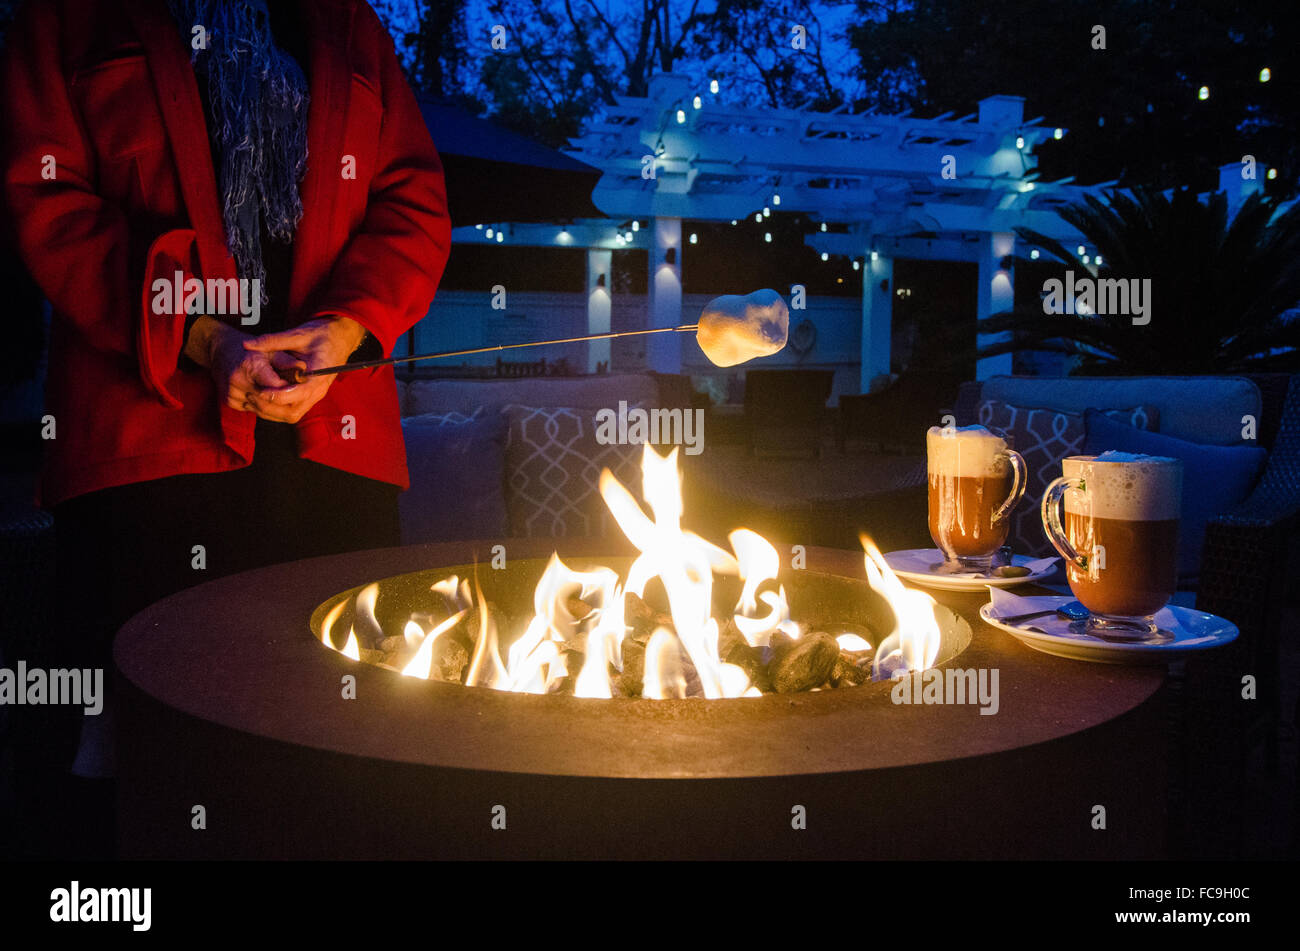 On a cool autumn evening, a woman warms up by a fireplace with ...